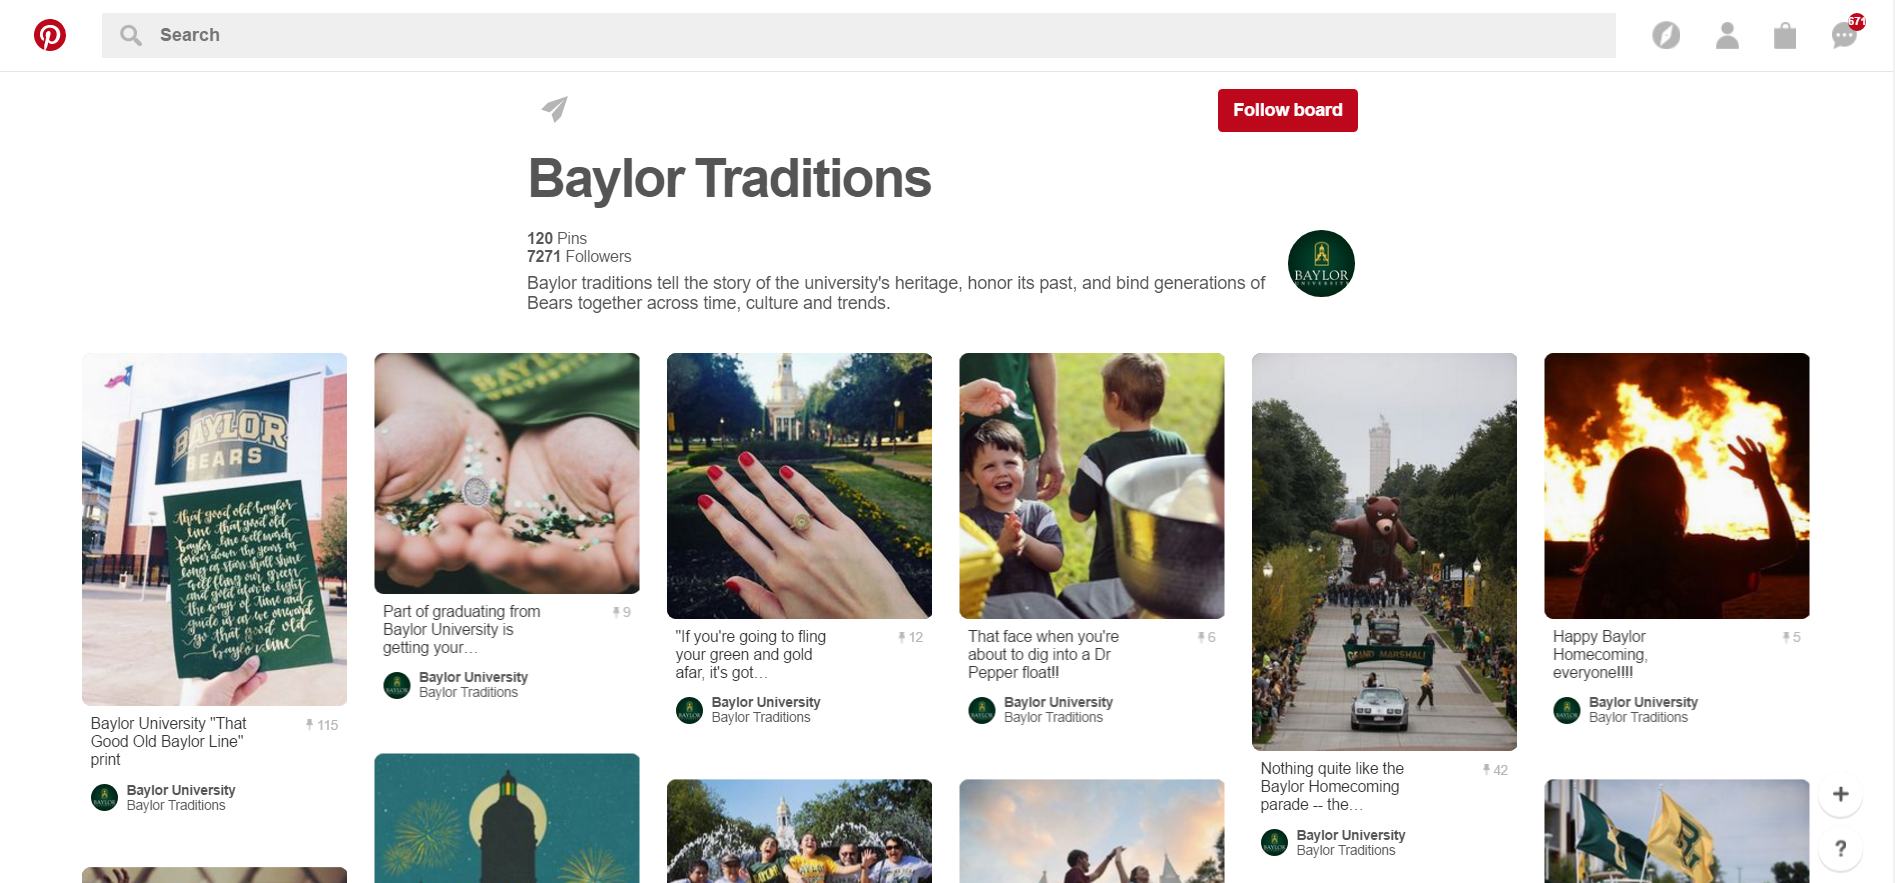 Baylor University Traditional Pinterest page